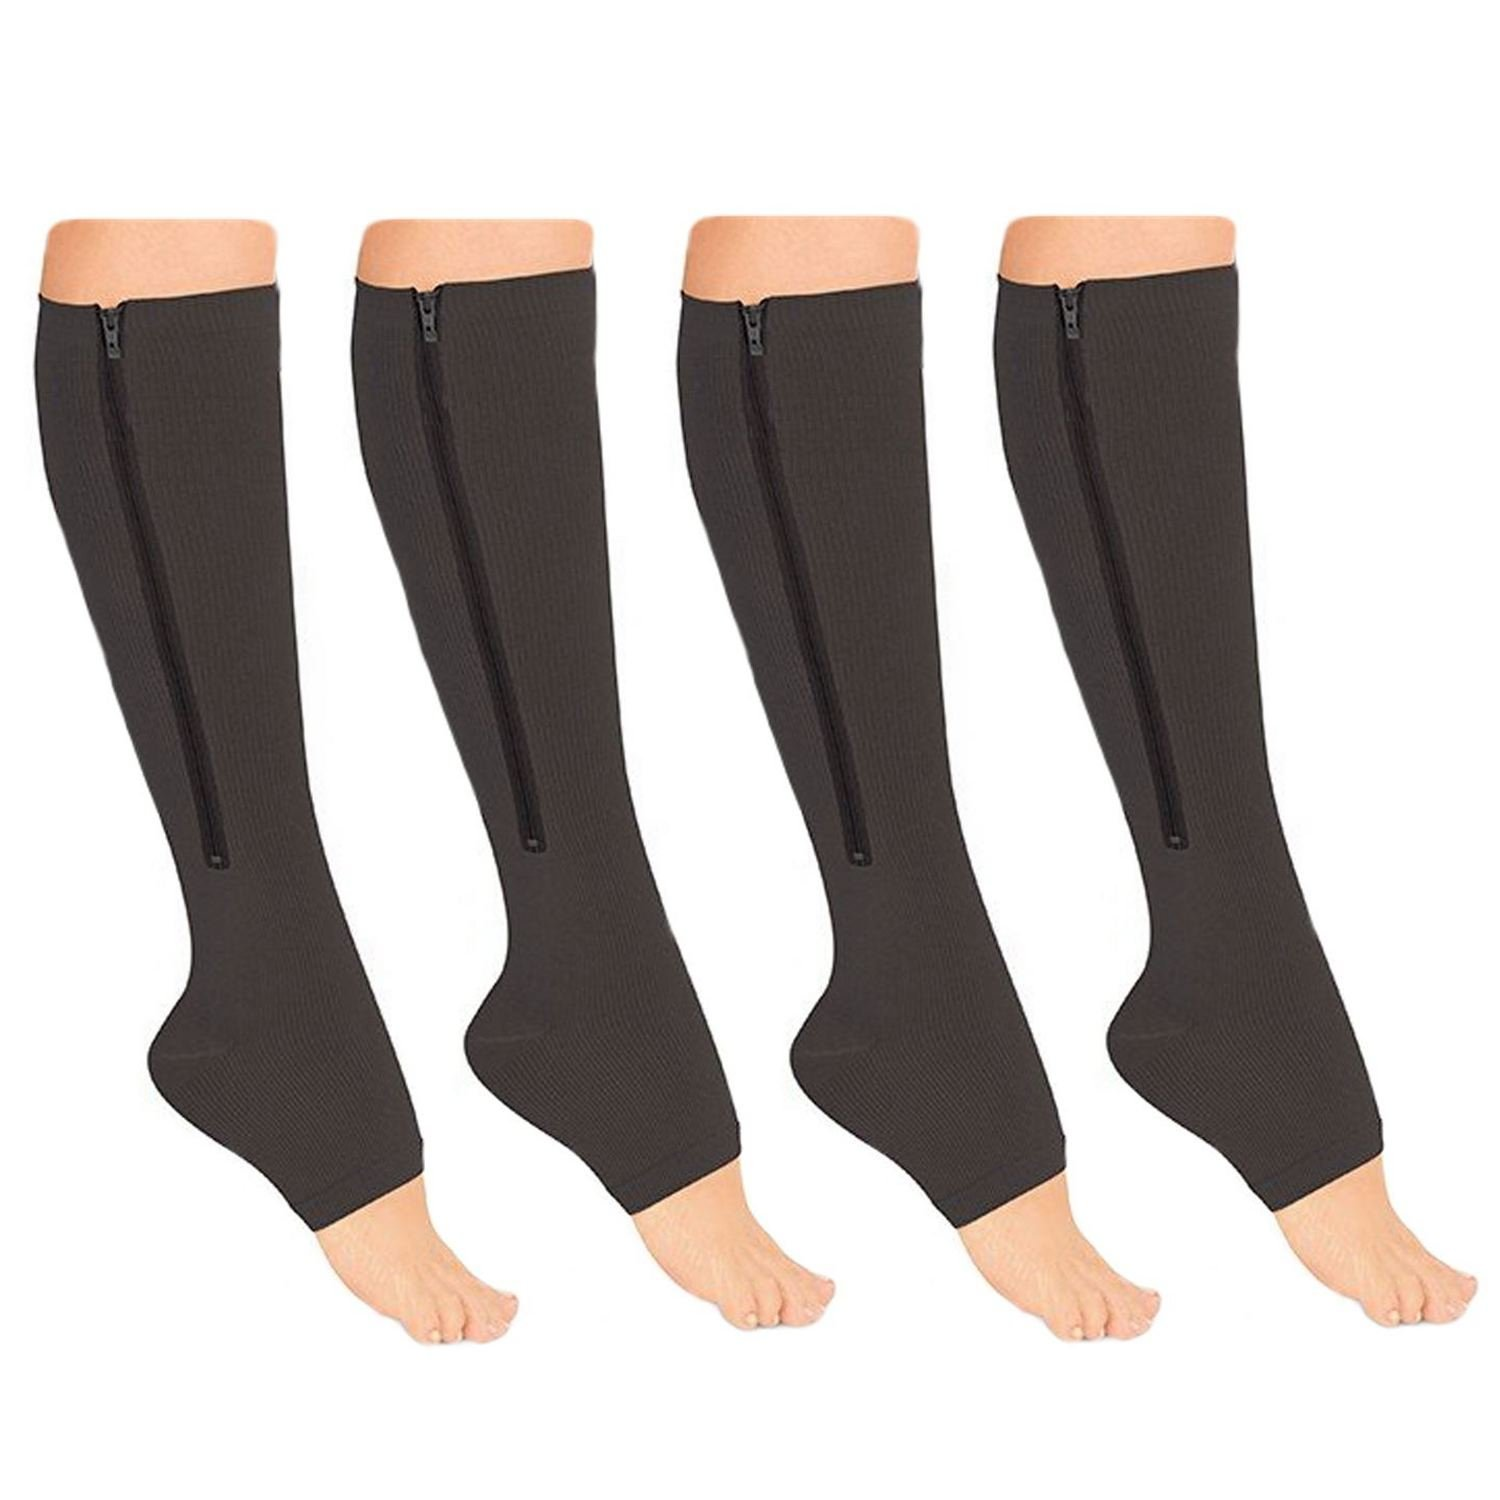 9a4db9d2c0 Amazon.com: Medicee Open Toe 15-20 Mmhg Zipper Compression Leg Ankle Calf  Circulation Swelling Relief Stocking, Black, Large/X-Large, 5 Ounce: Health  ...